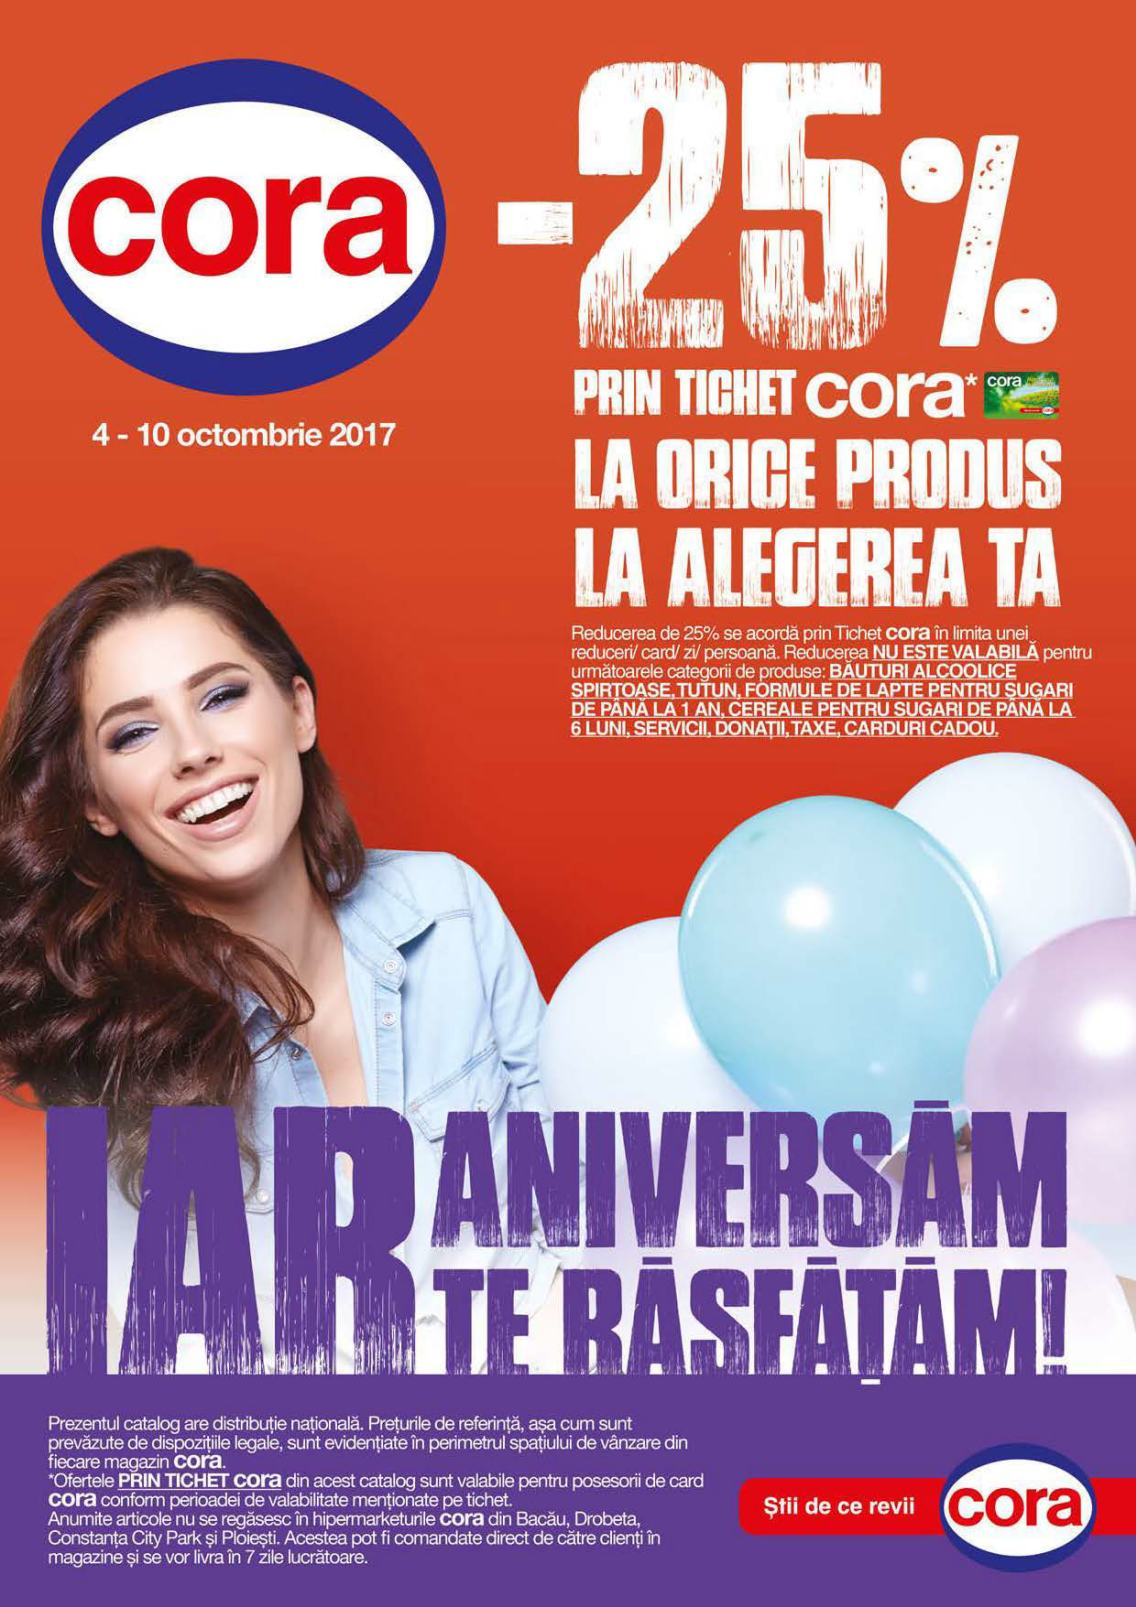 Catalog Cora 4 octombrie - 10 octombrie 2017. Produse alimentare